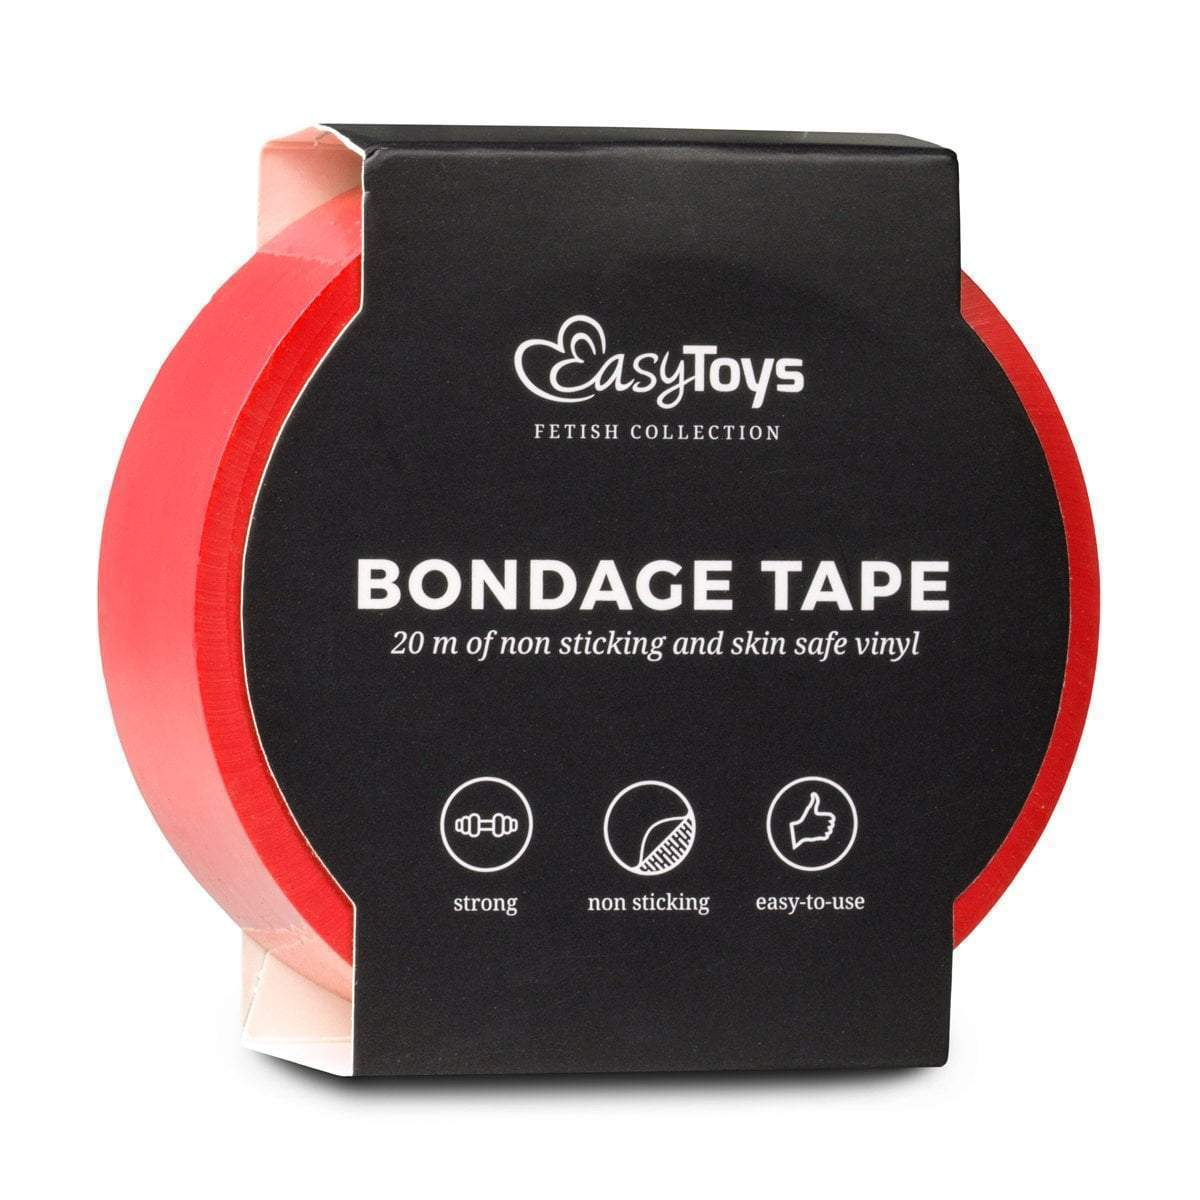 Easy Toys Fetish Collection tape Red Bondage Tape 20m